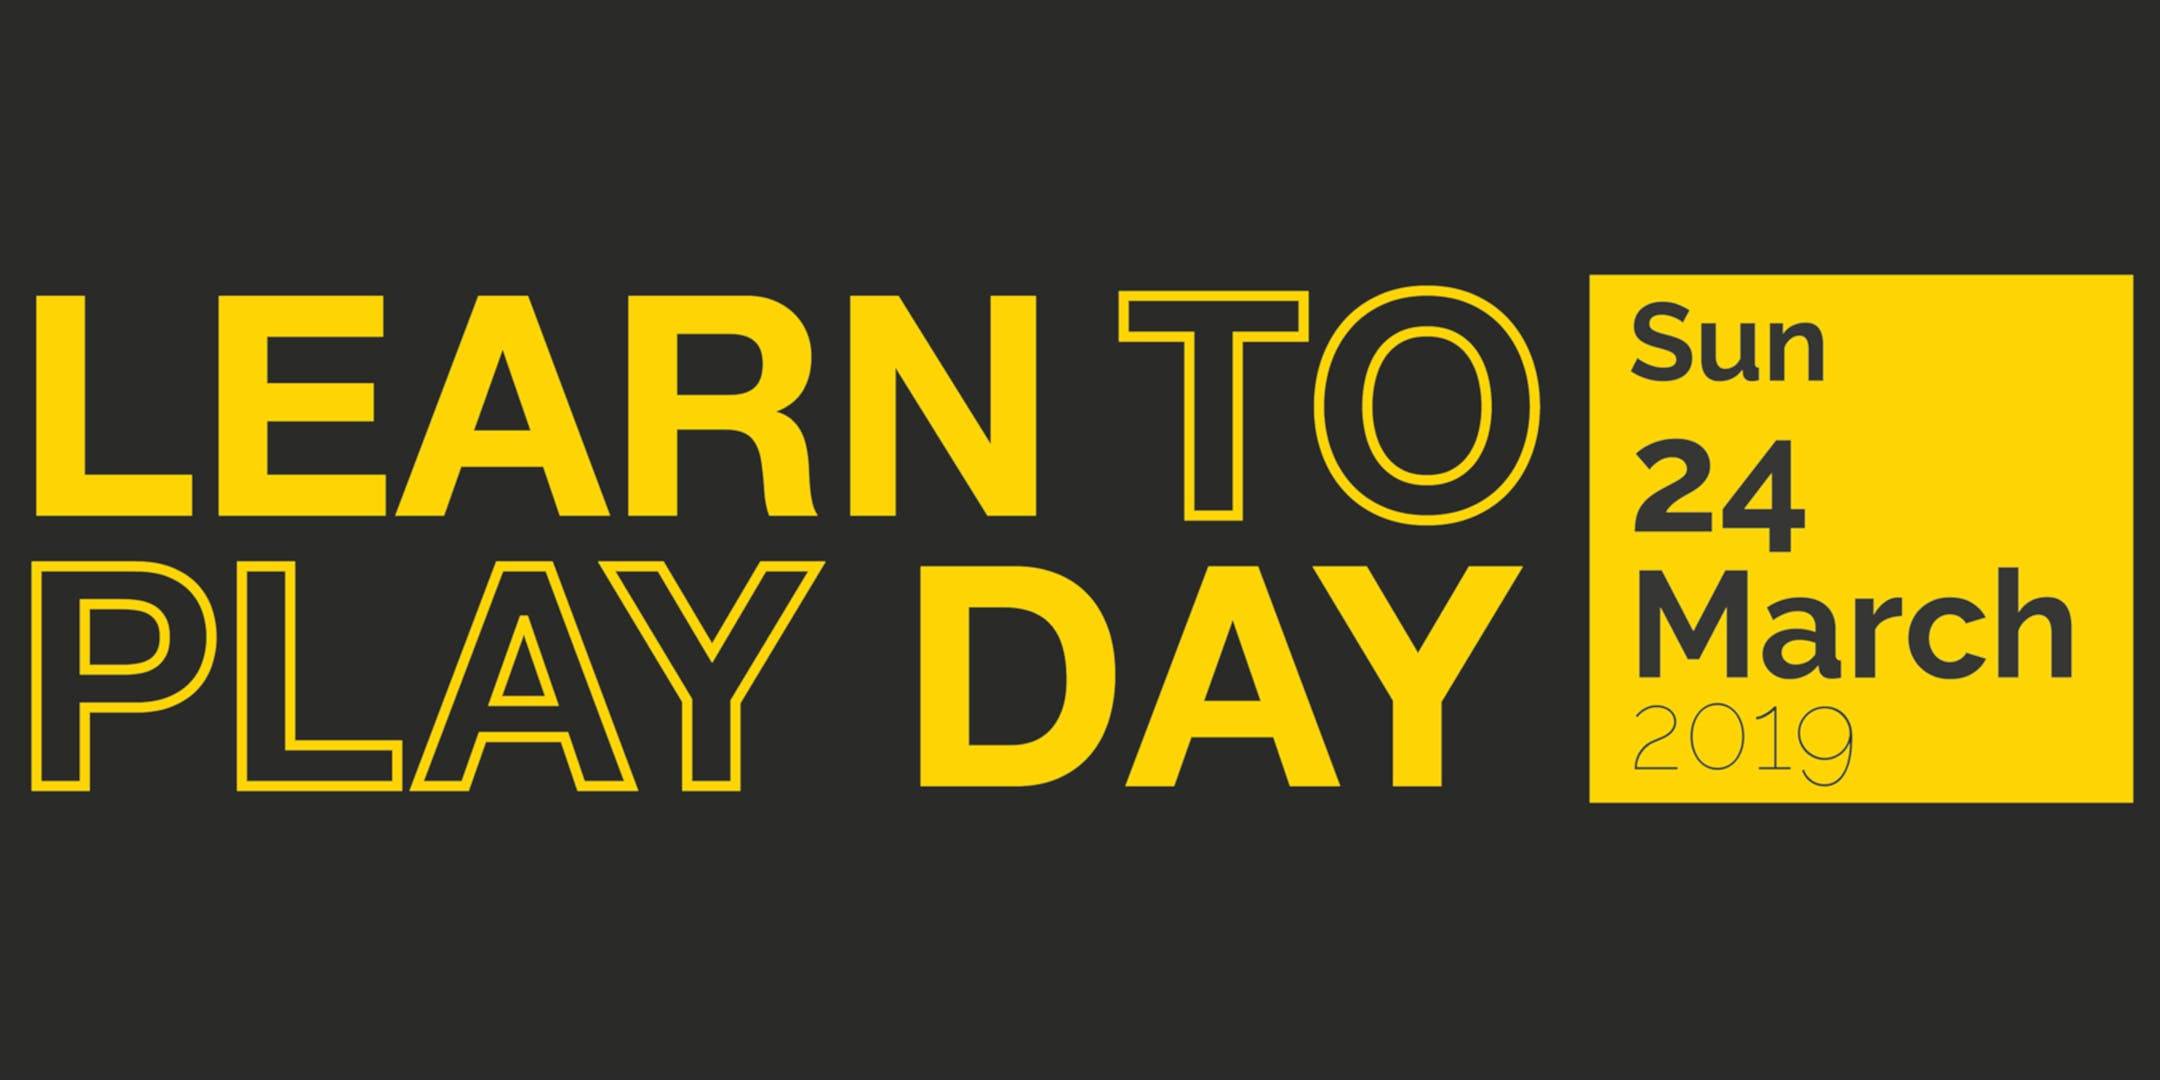 Learn To Play Day at Rattle & Drum Music